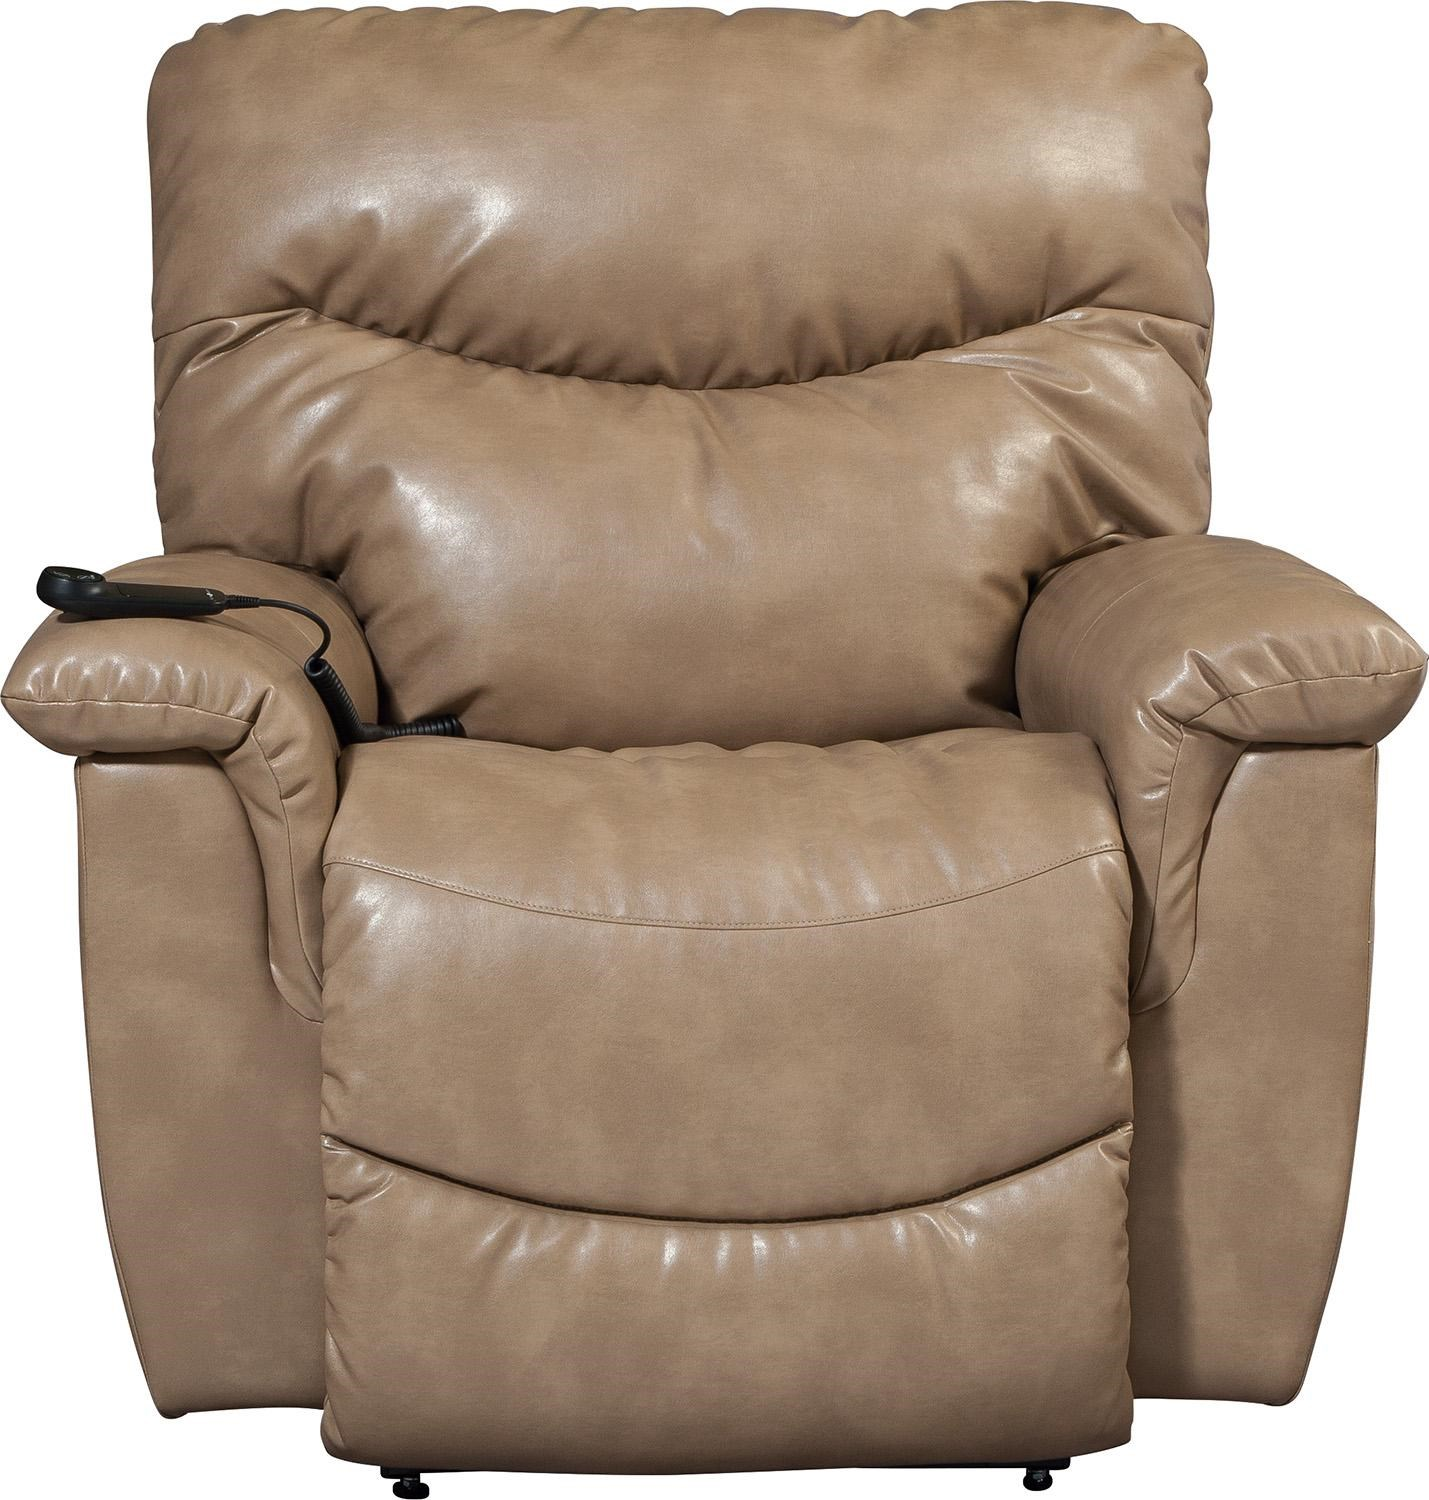 Lazy boy lift chair recliner recliners awesome lazy boy for Recliner lift chair